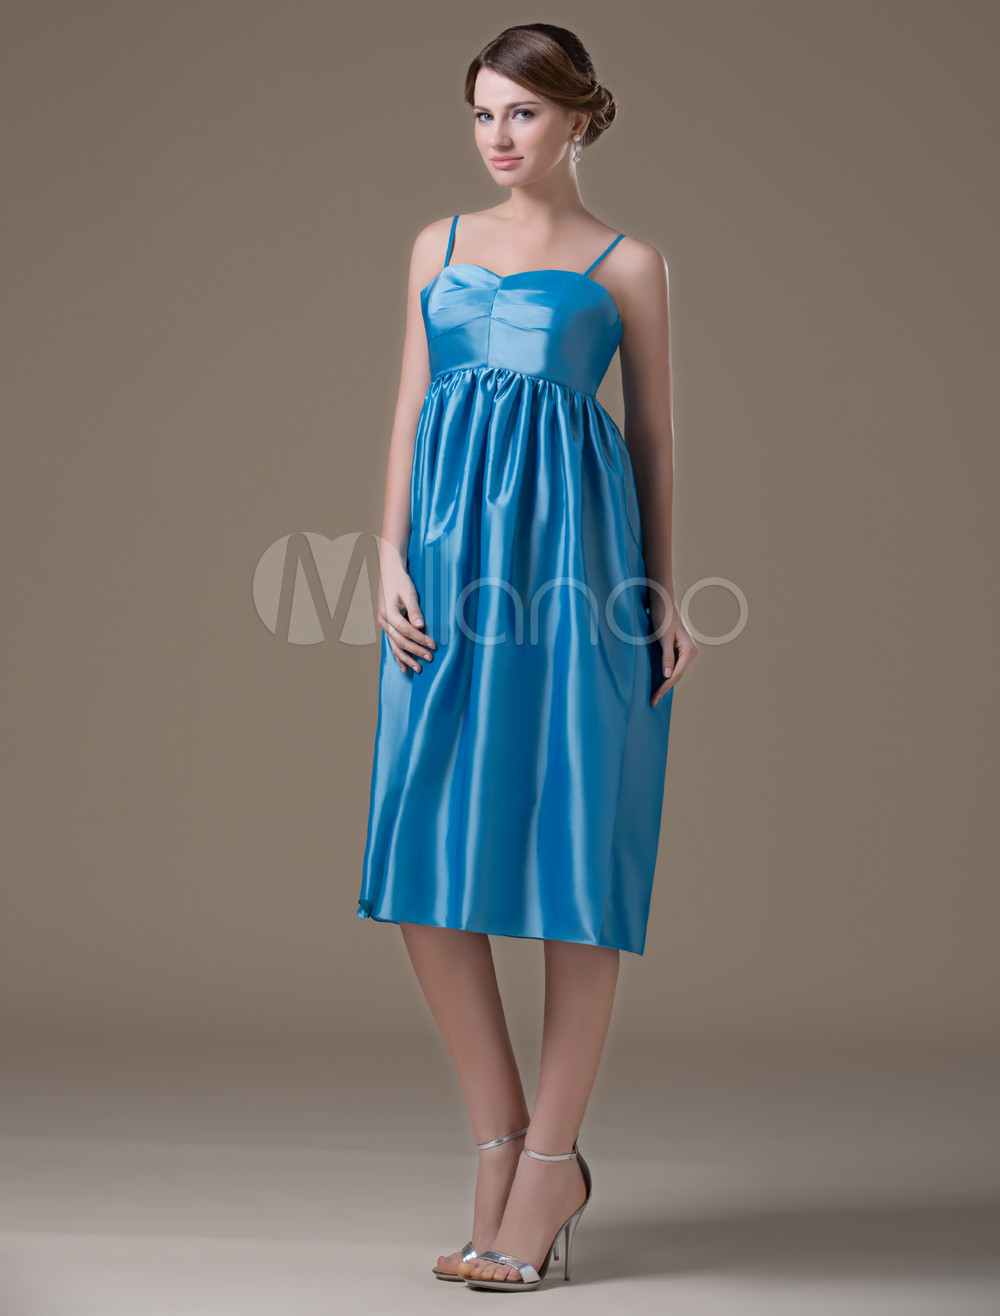 Cute Blue Taffeta Sweetheart Tea Length Maternity Bridesmaid Dress